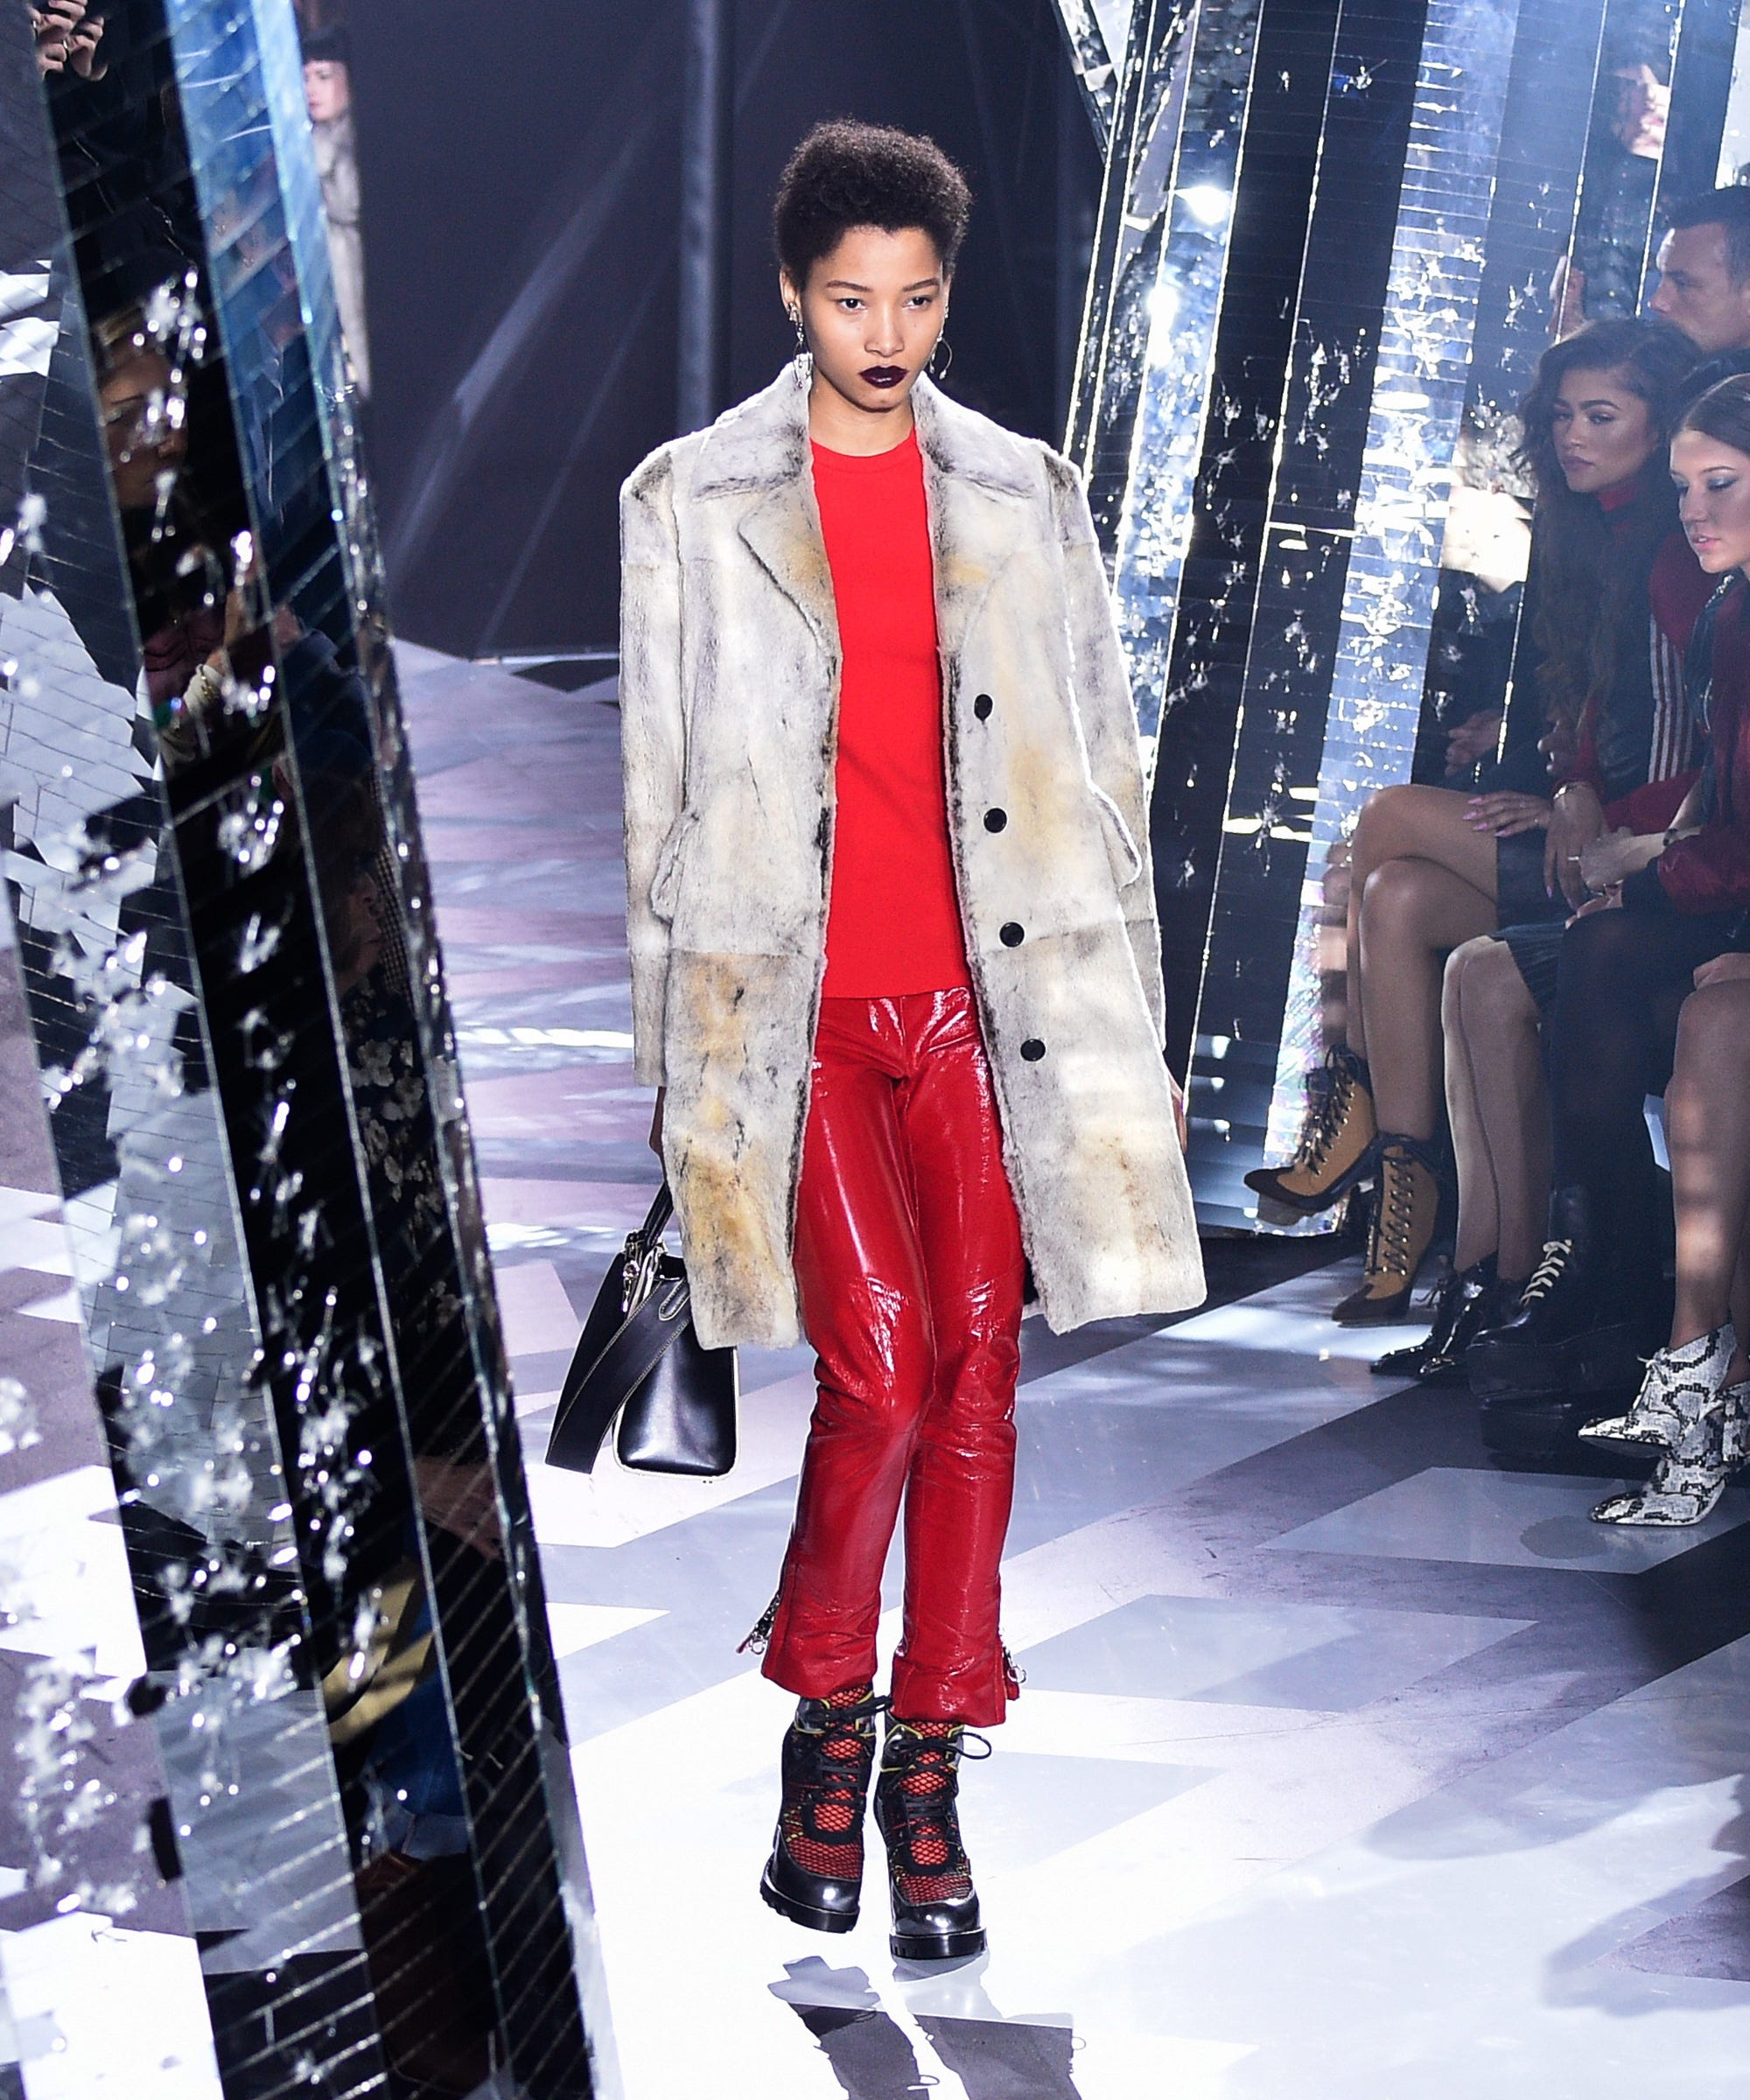 c6c53a6032bd 11 Of the Biggest Moments From Fashion Month